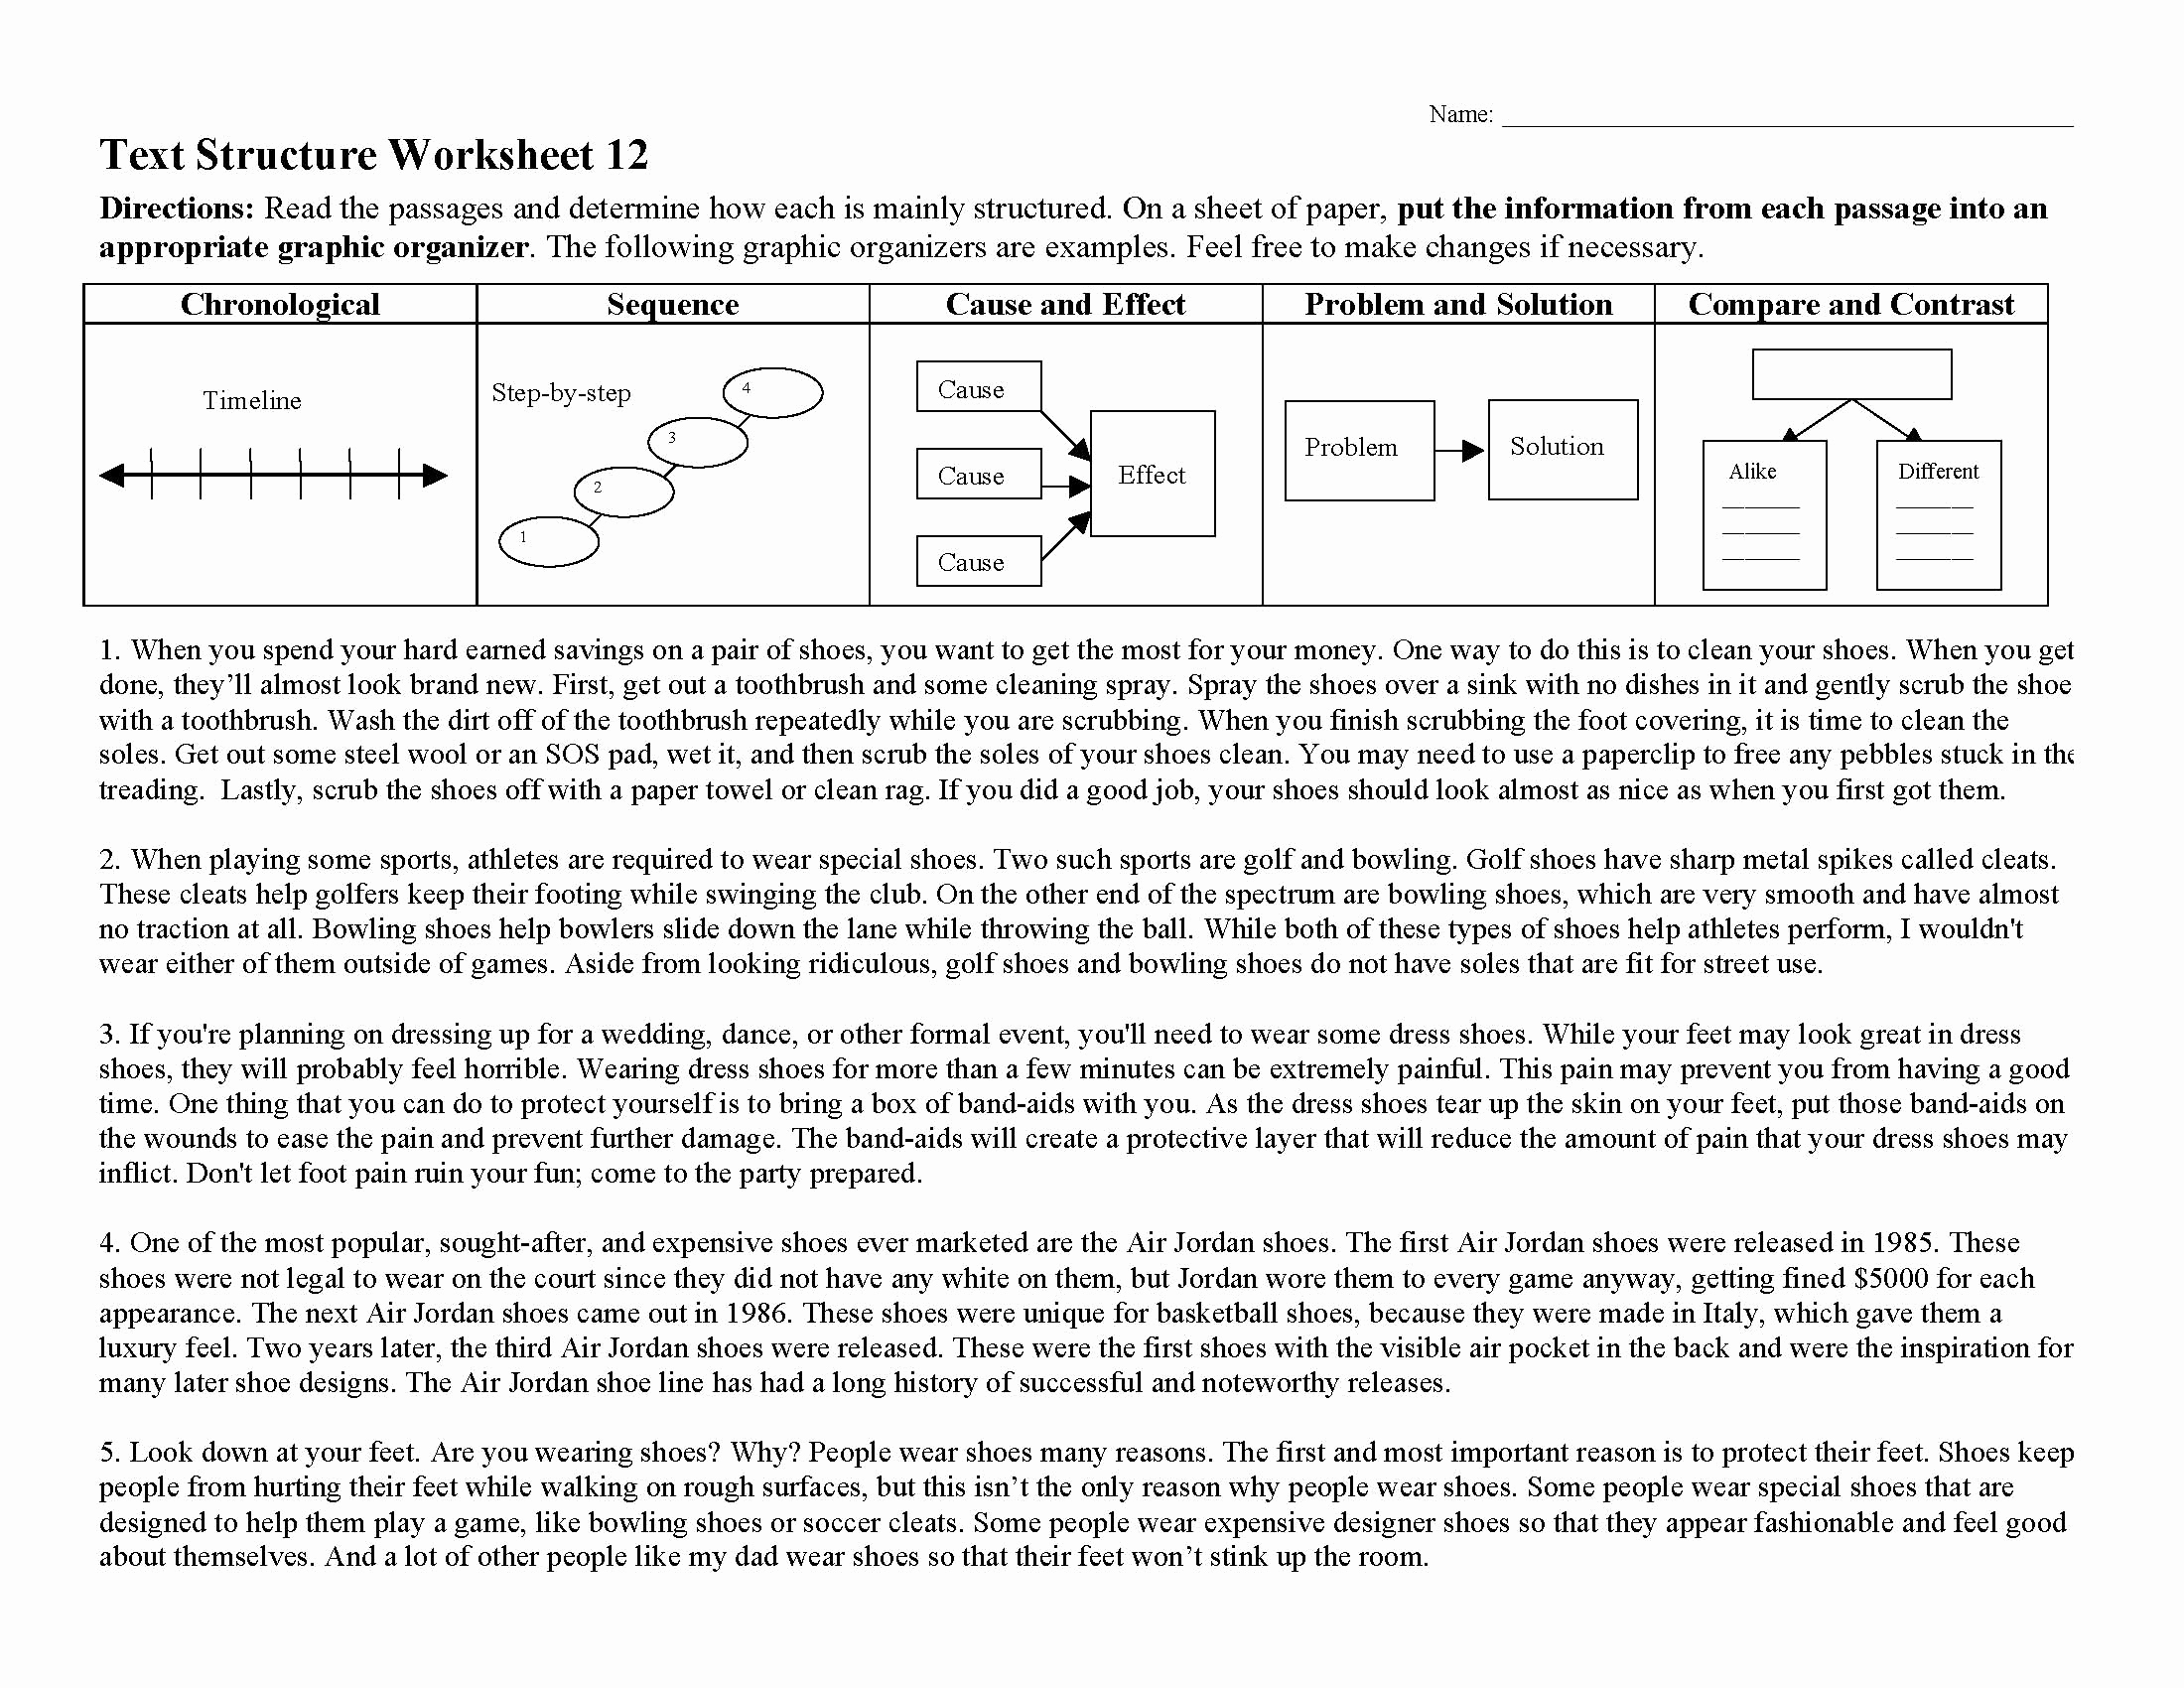 Text Structure Practice Worksheets Elegant Text Structure Worksheet 12